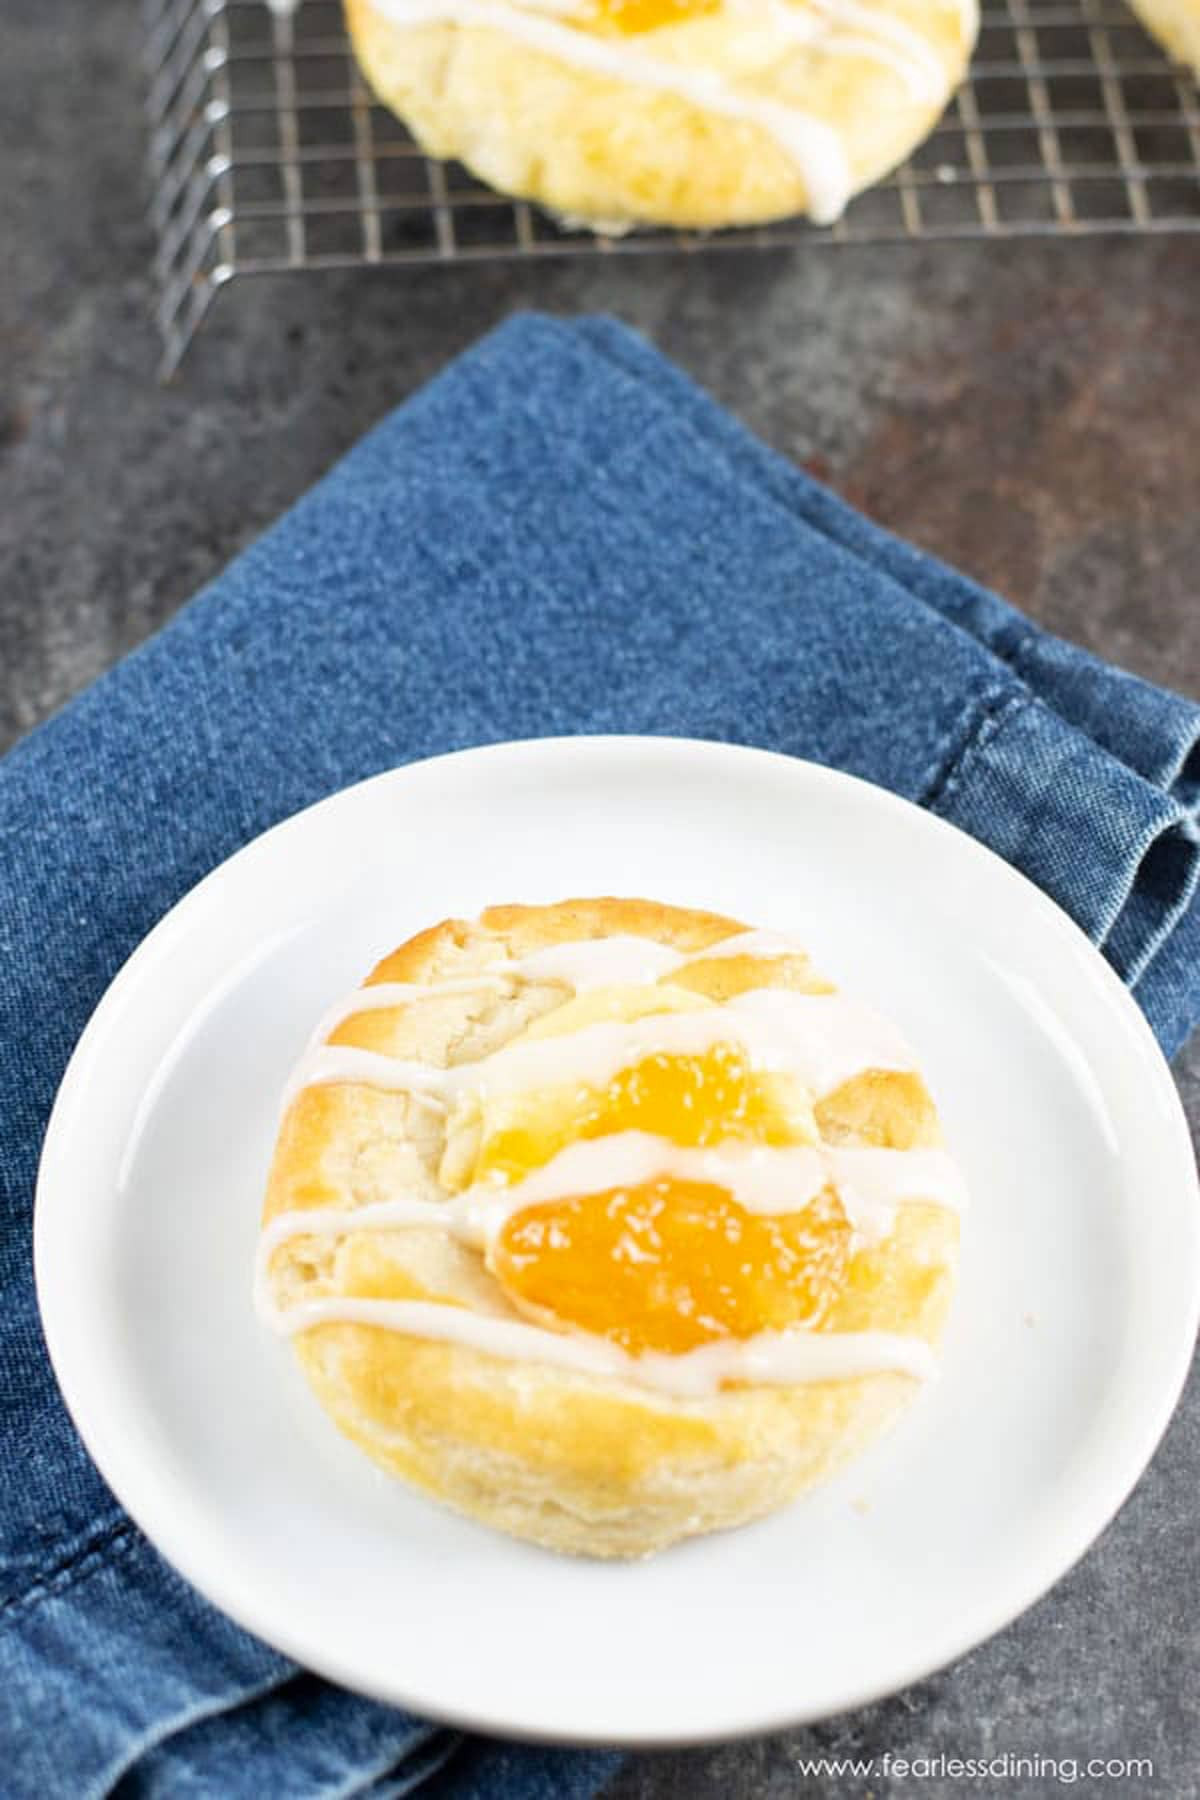 a gluten free cheese Danish on a plate